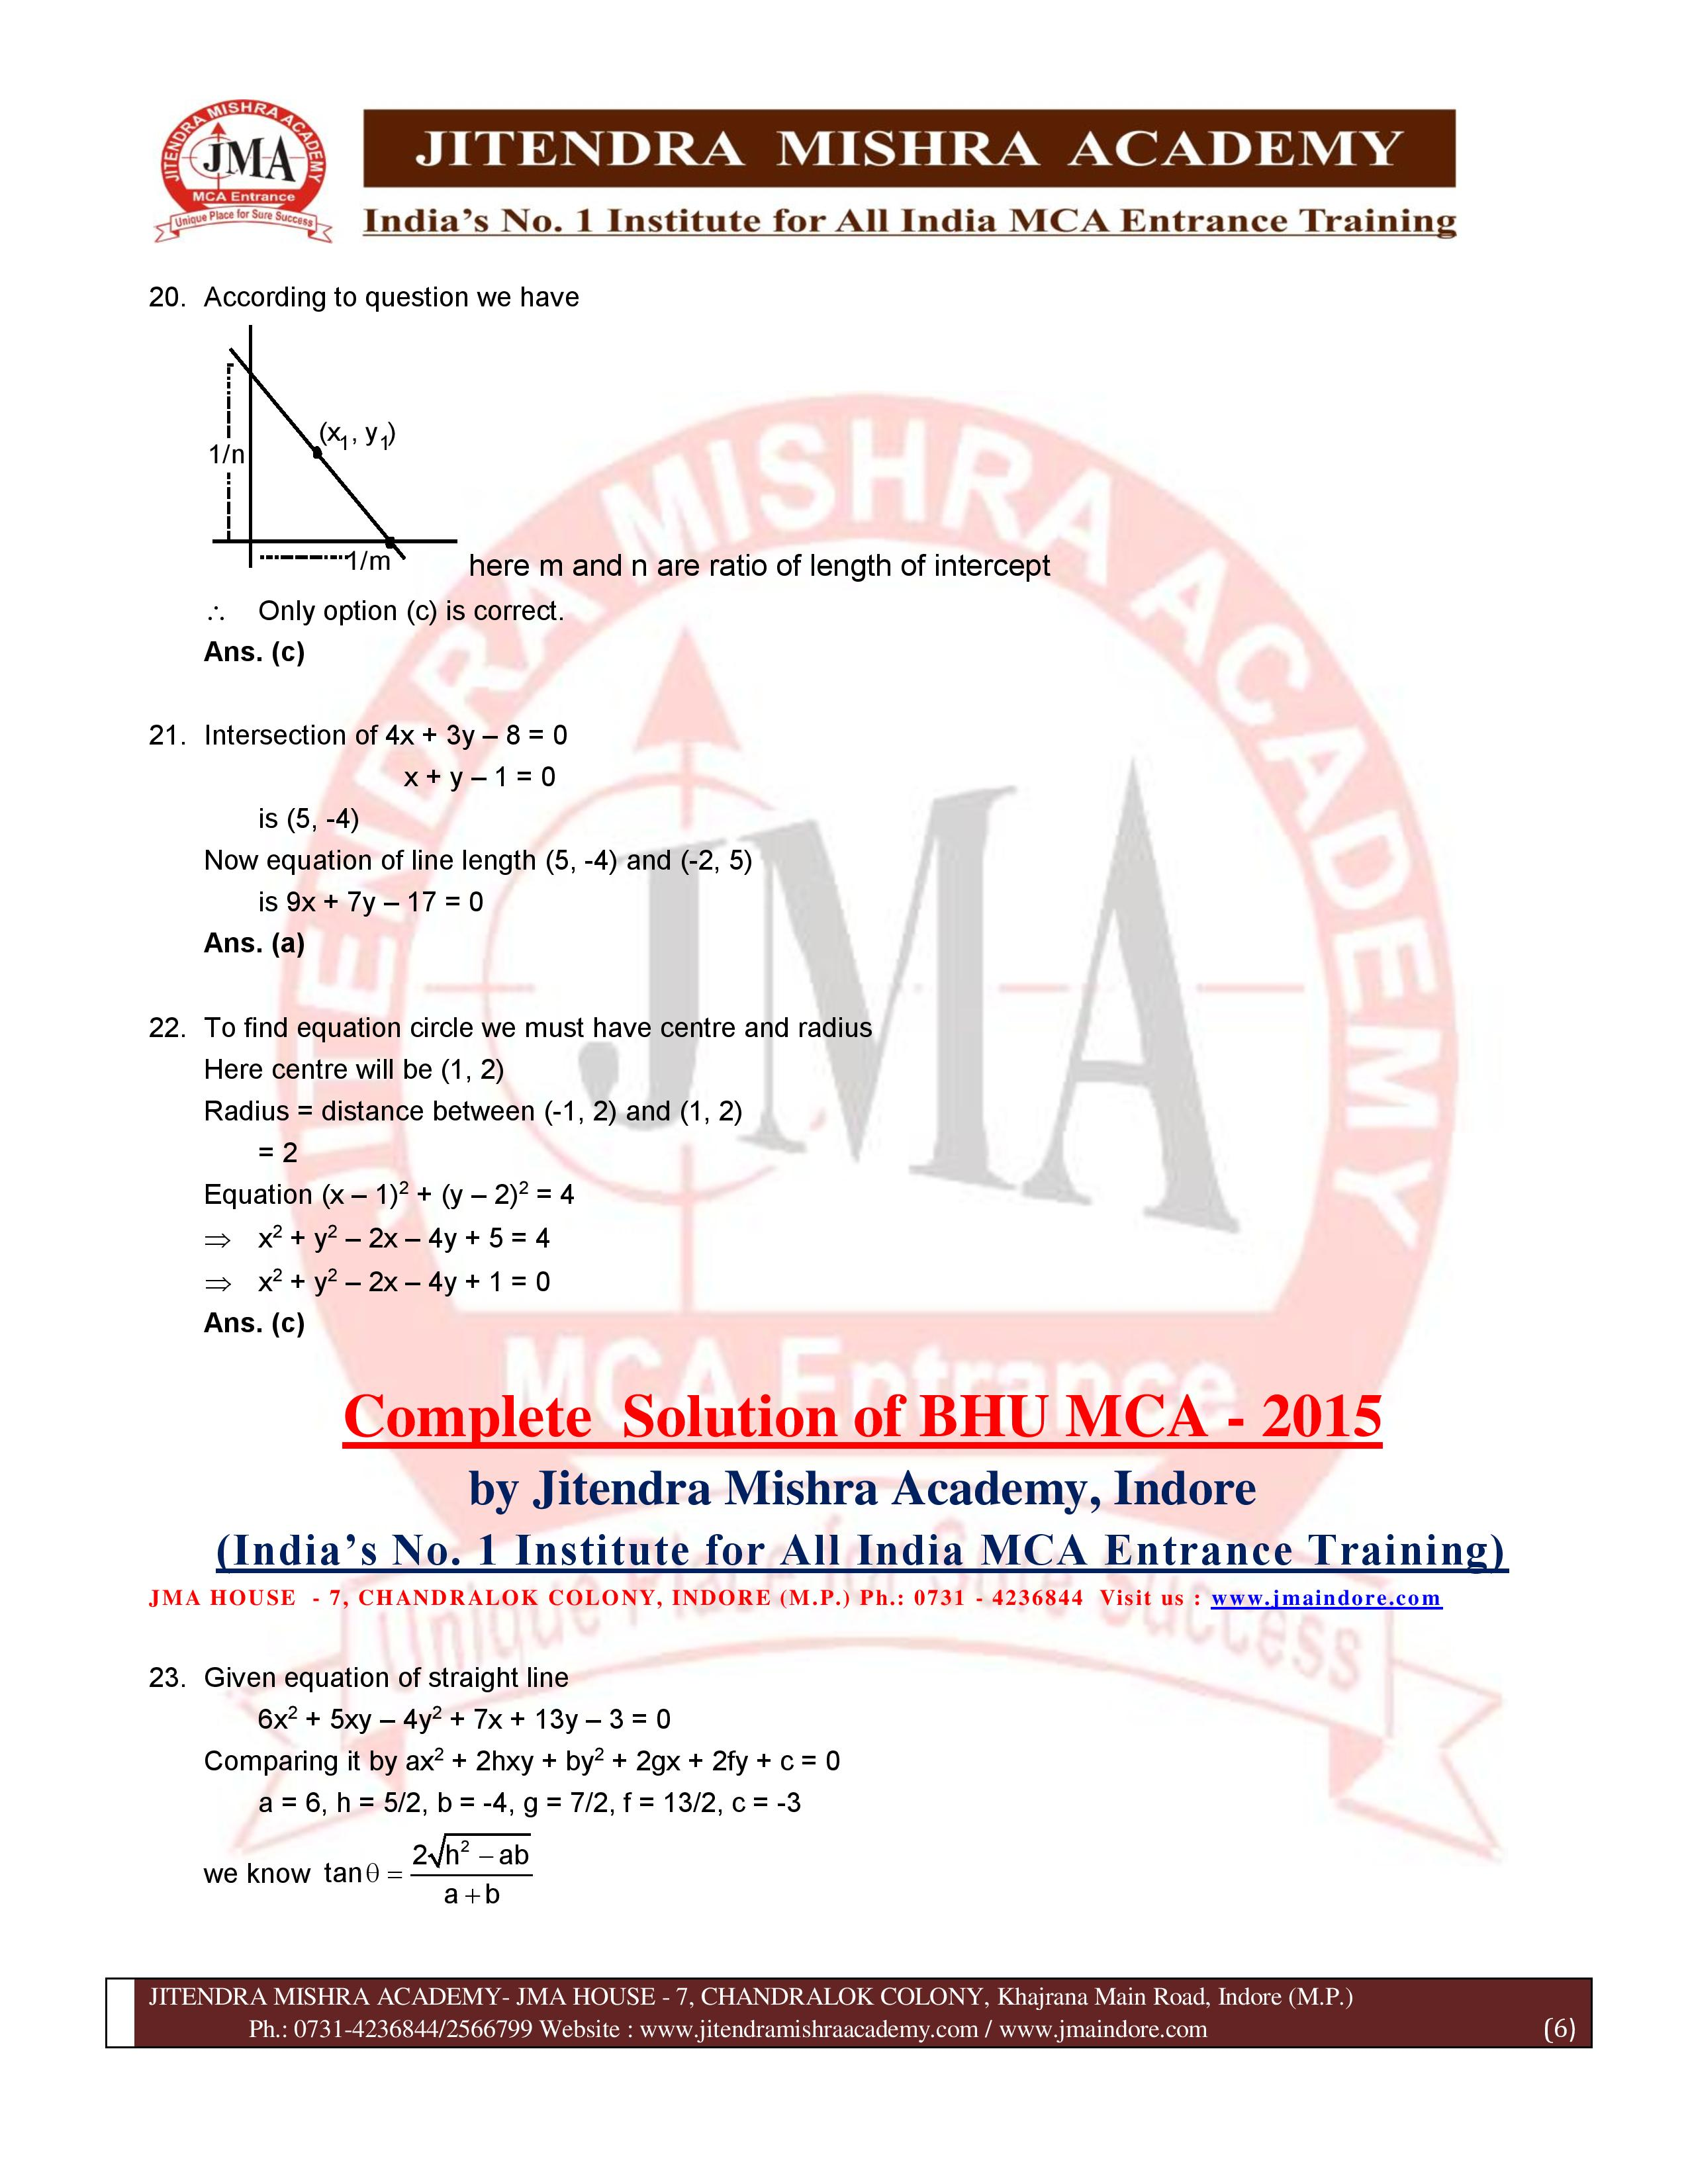 BHU 2015 SOLUTION (SET - 1) (29.06.16)-page-006